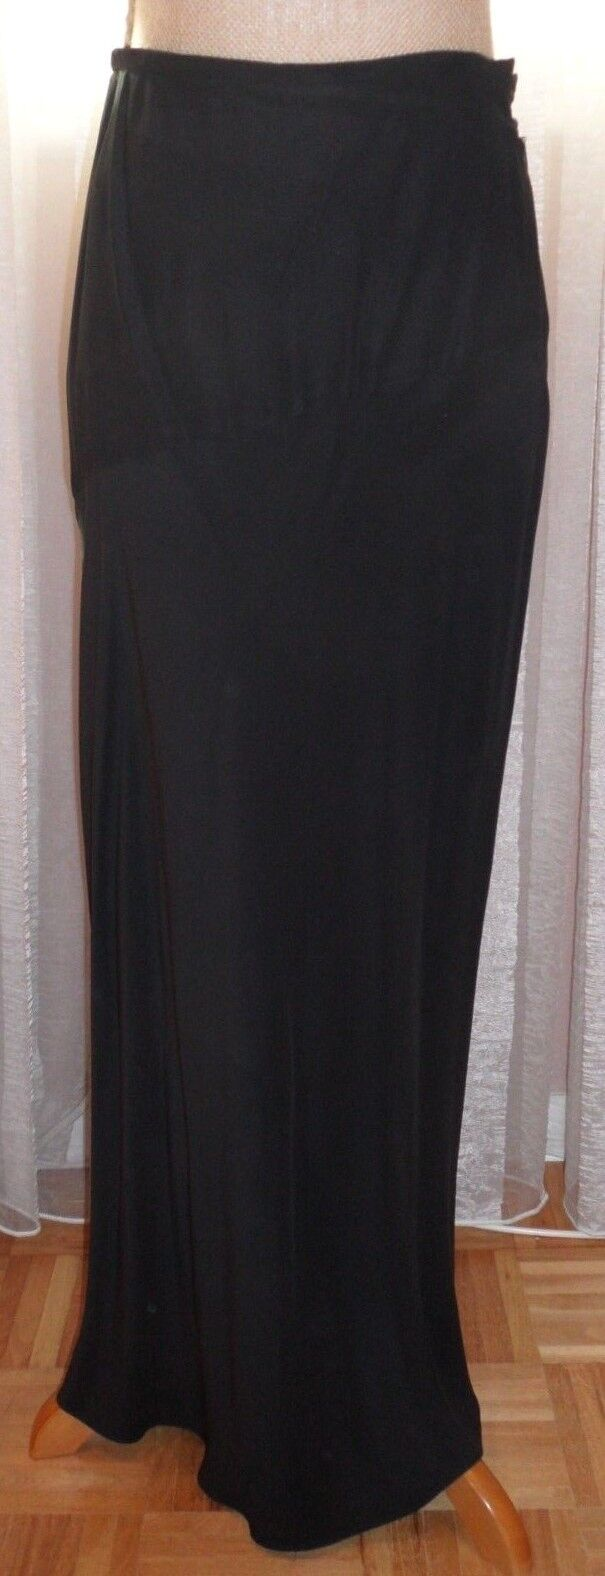 DKNY ELEGANT jupe, PERFECT FOR ALL OCCASIONS, NICE DETAILS, Taille 2